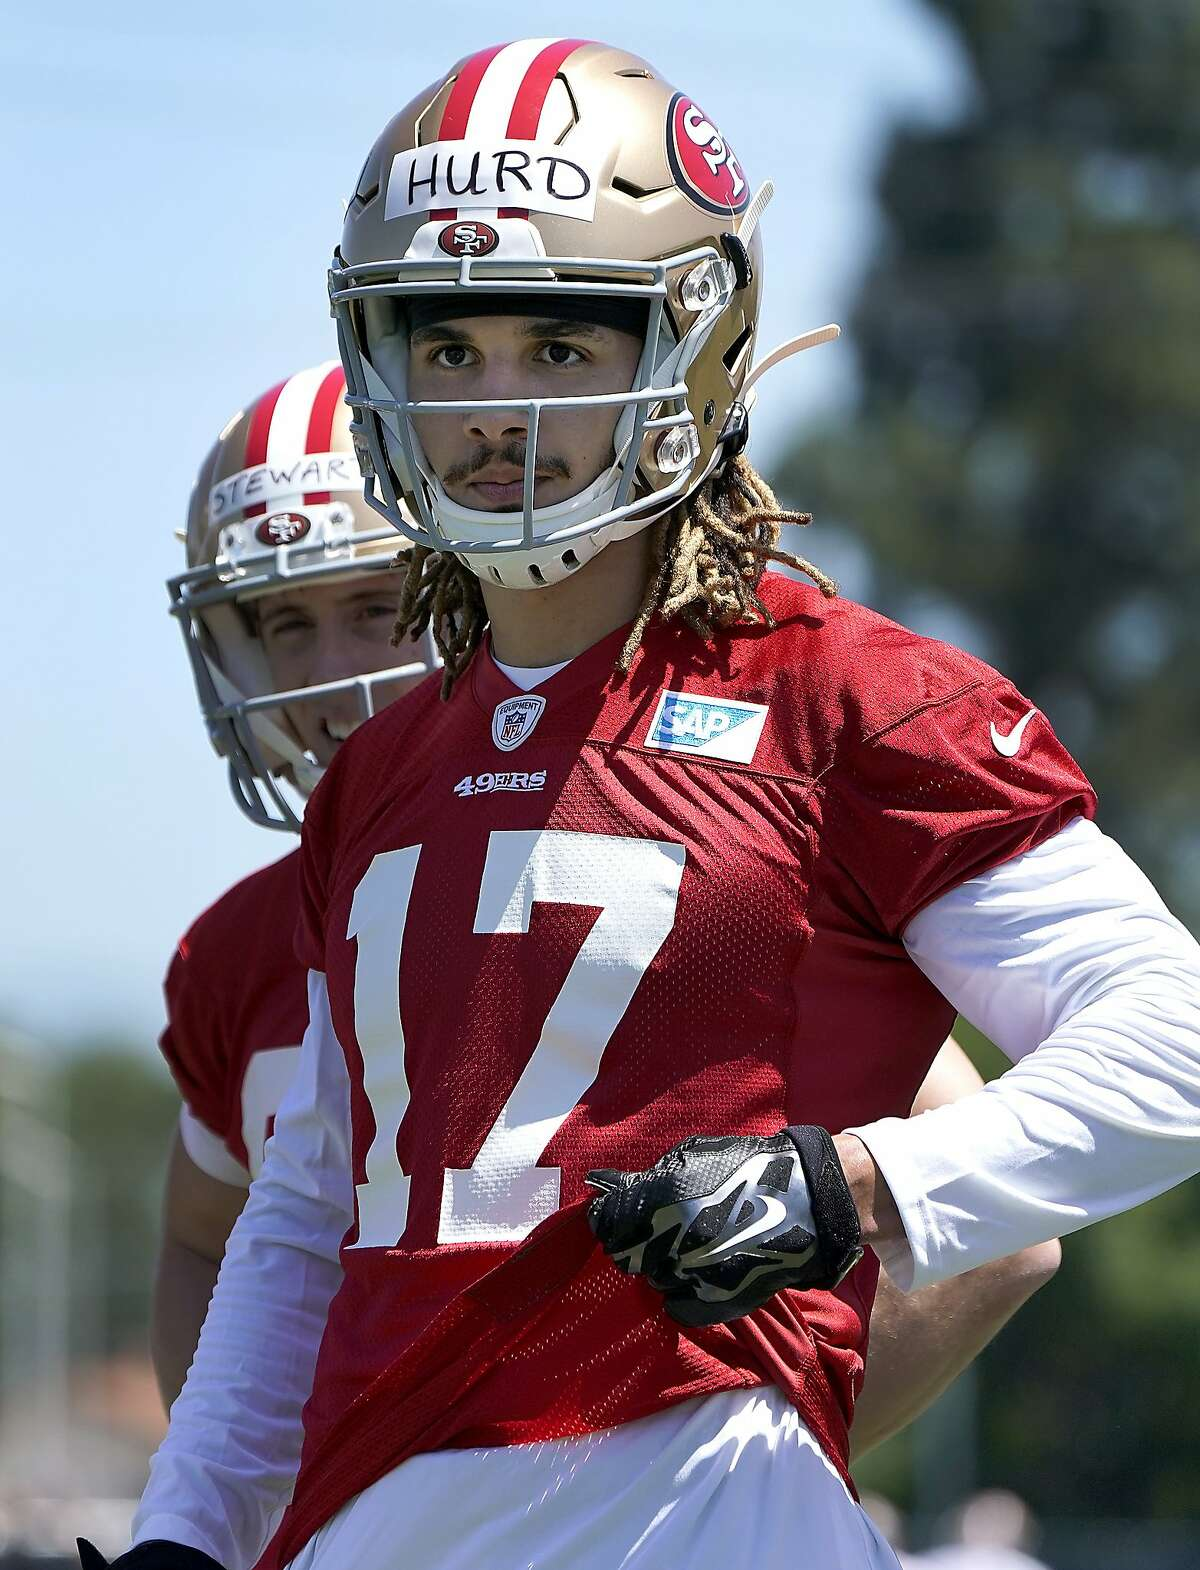 San Francisco 49ers rookie wide receiver Jalen Hurd (17) work on a drill during the NFL football team's rookie minicamp in Santa Clara, Calif., Friday, May 3, 2019. (AP Photo/Tony Avelar)